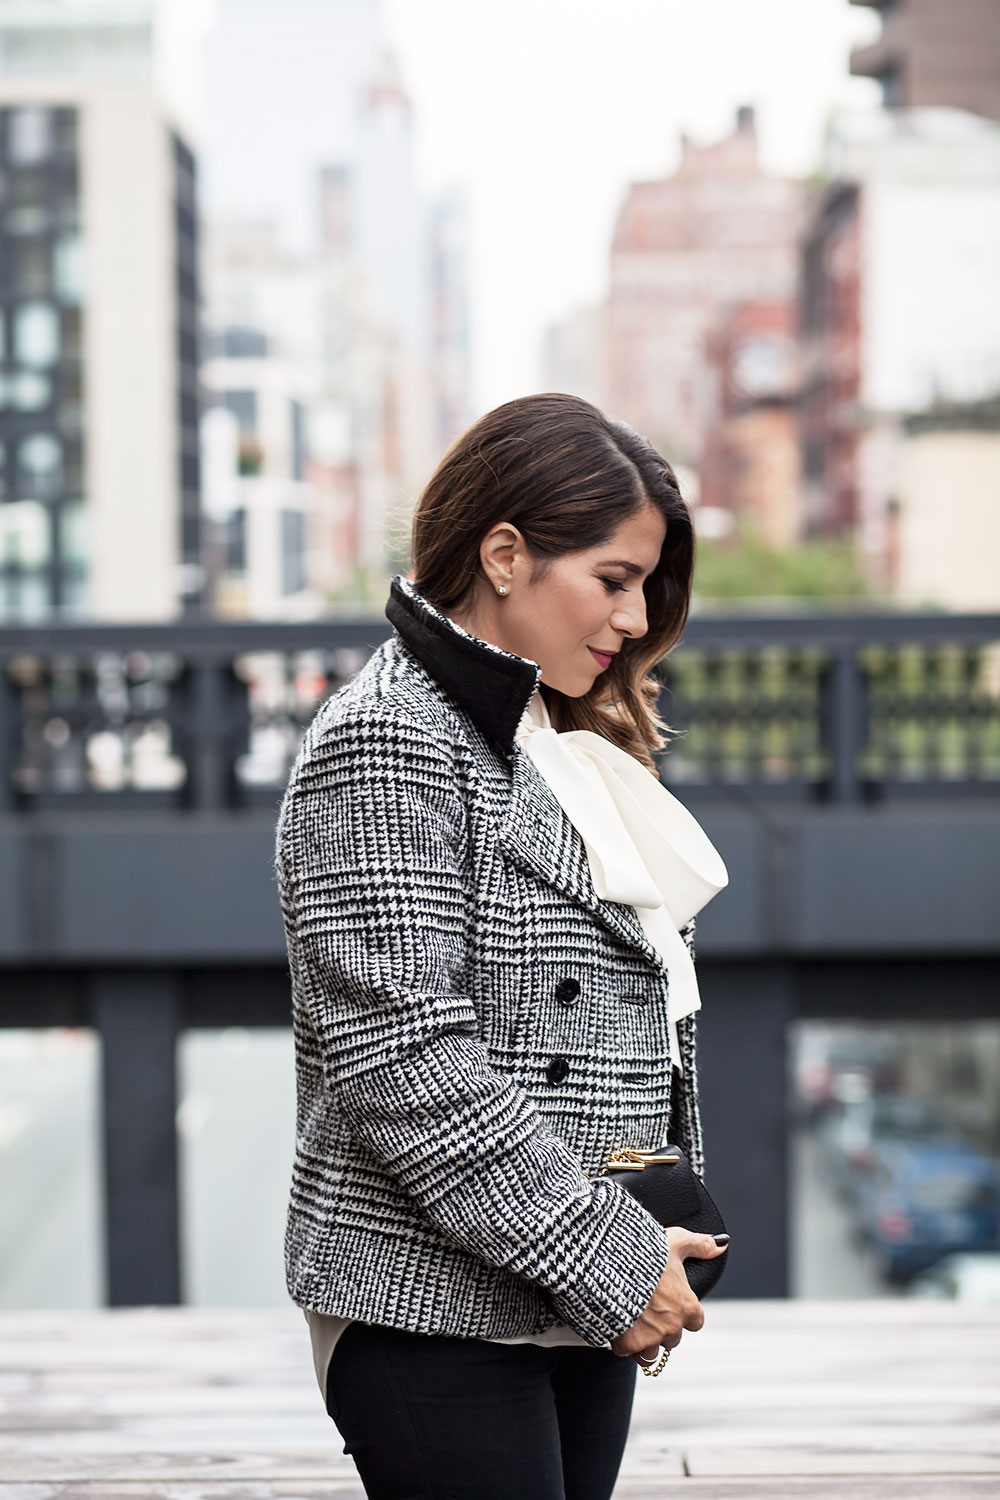 Banana Republic Plaid Coat Kate Spade Bow Blouse Black Denim Maternity Style Valentino Rockstud Flats New York City Fashion Blogger Corproate Catwalk